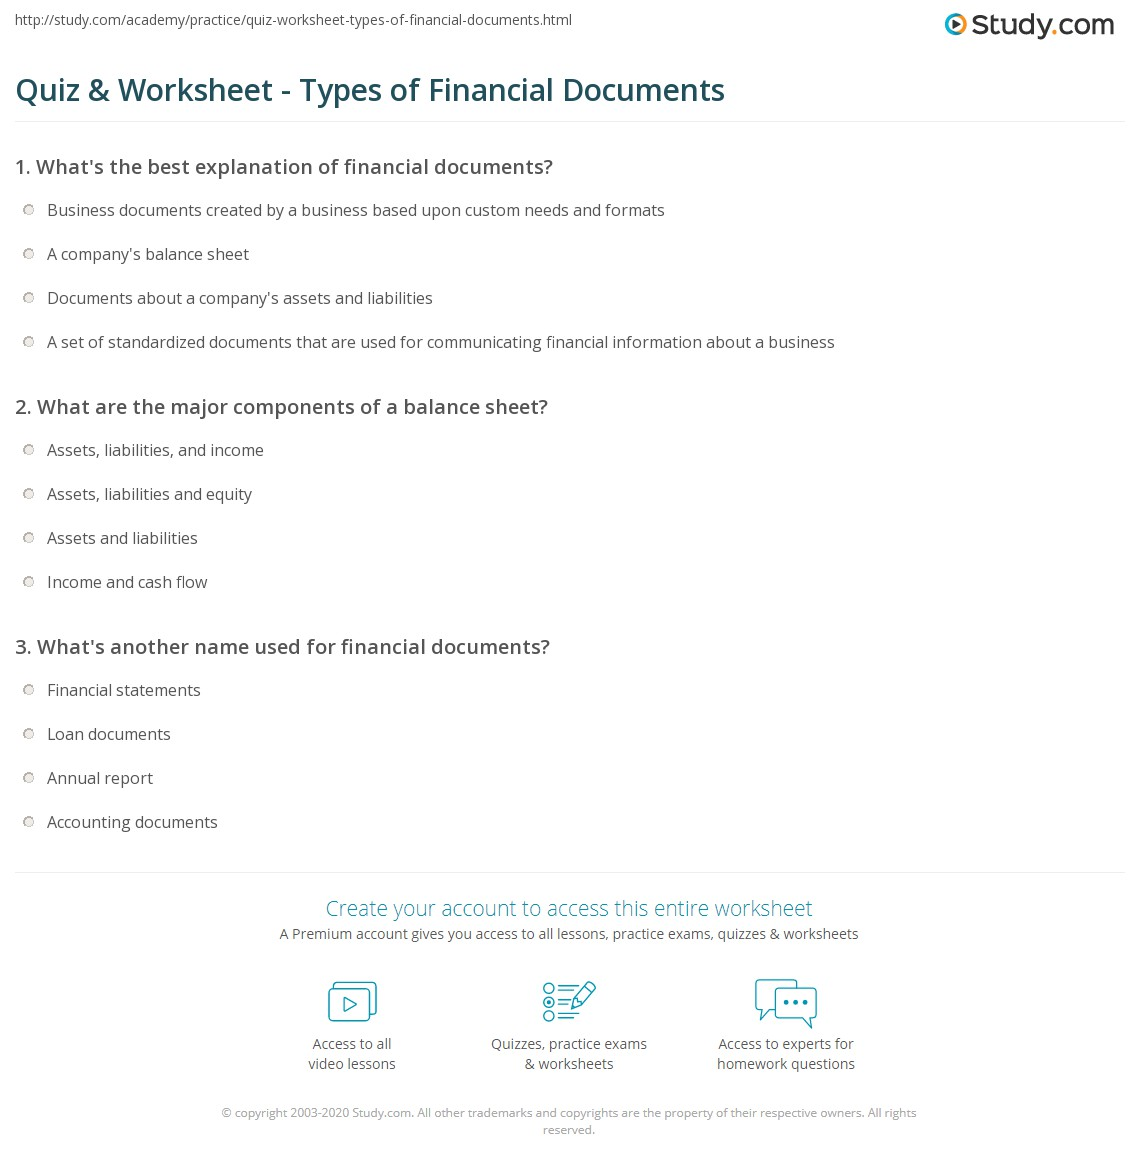 components of balance sheet – Components of Balance Sheet